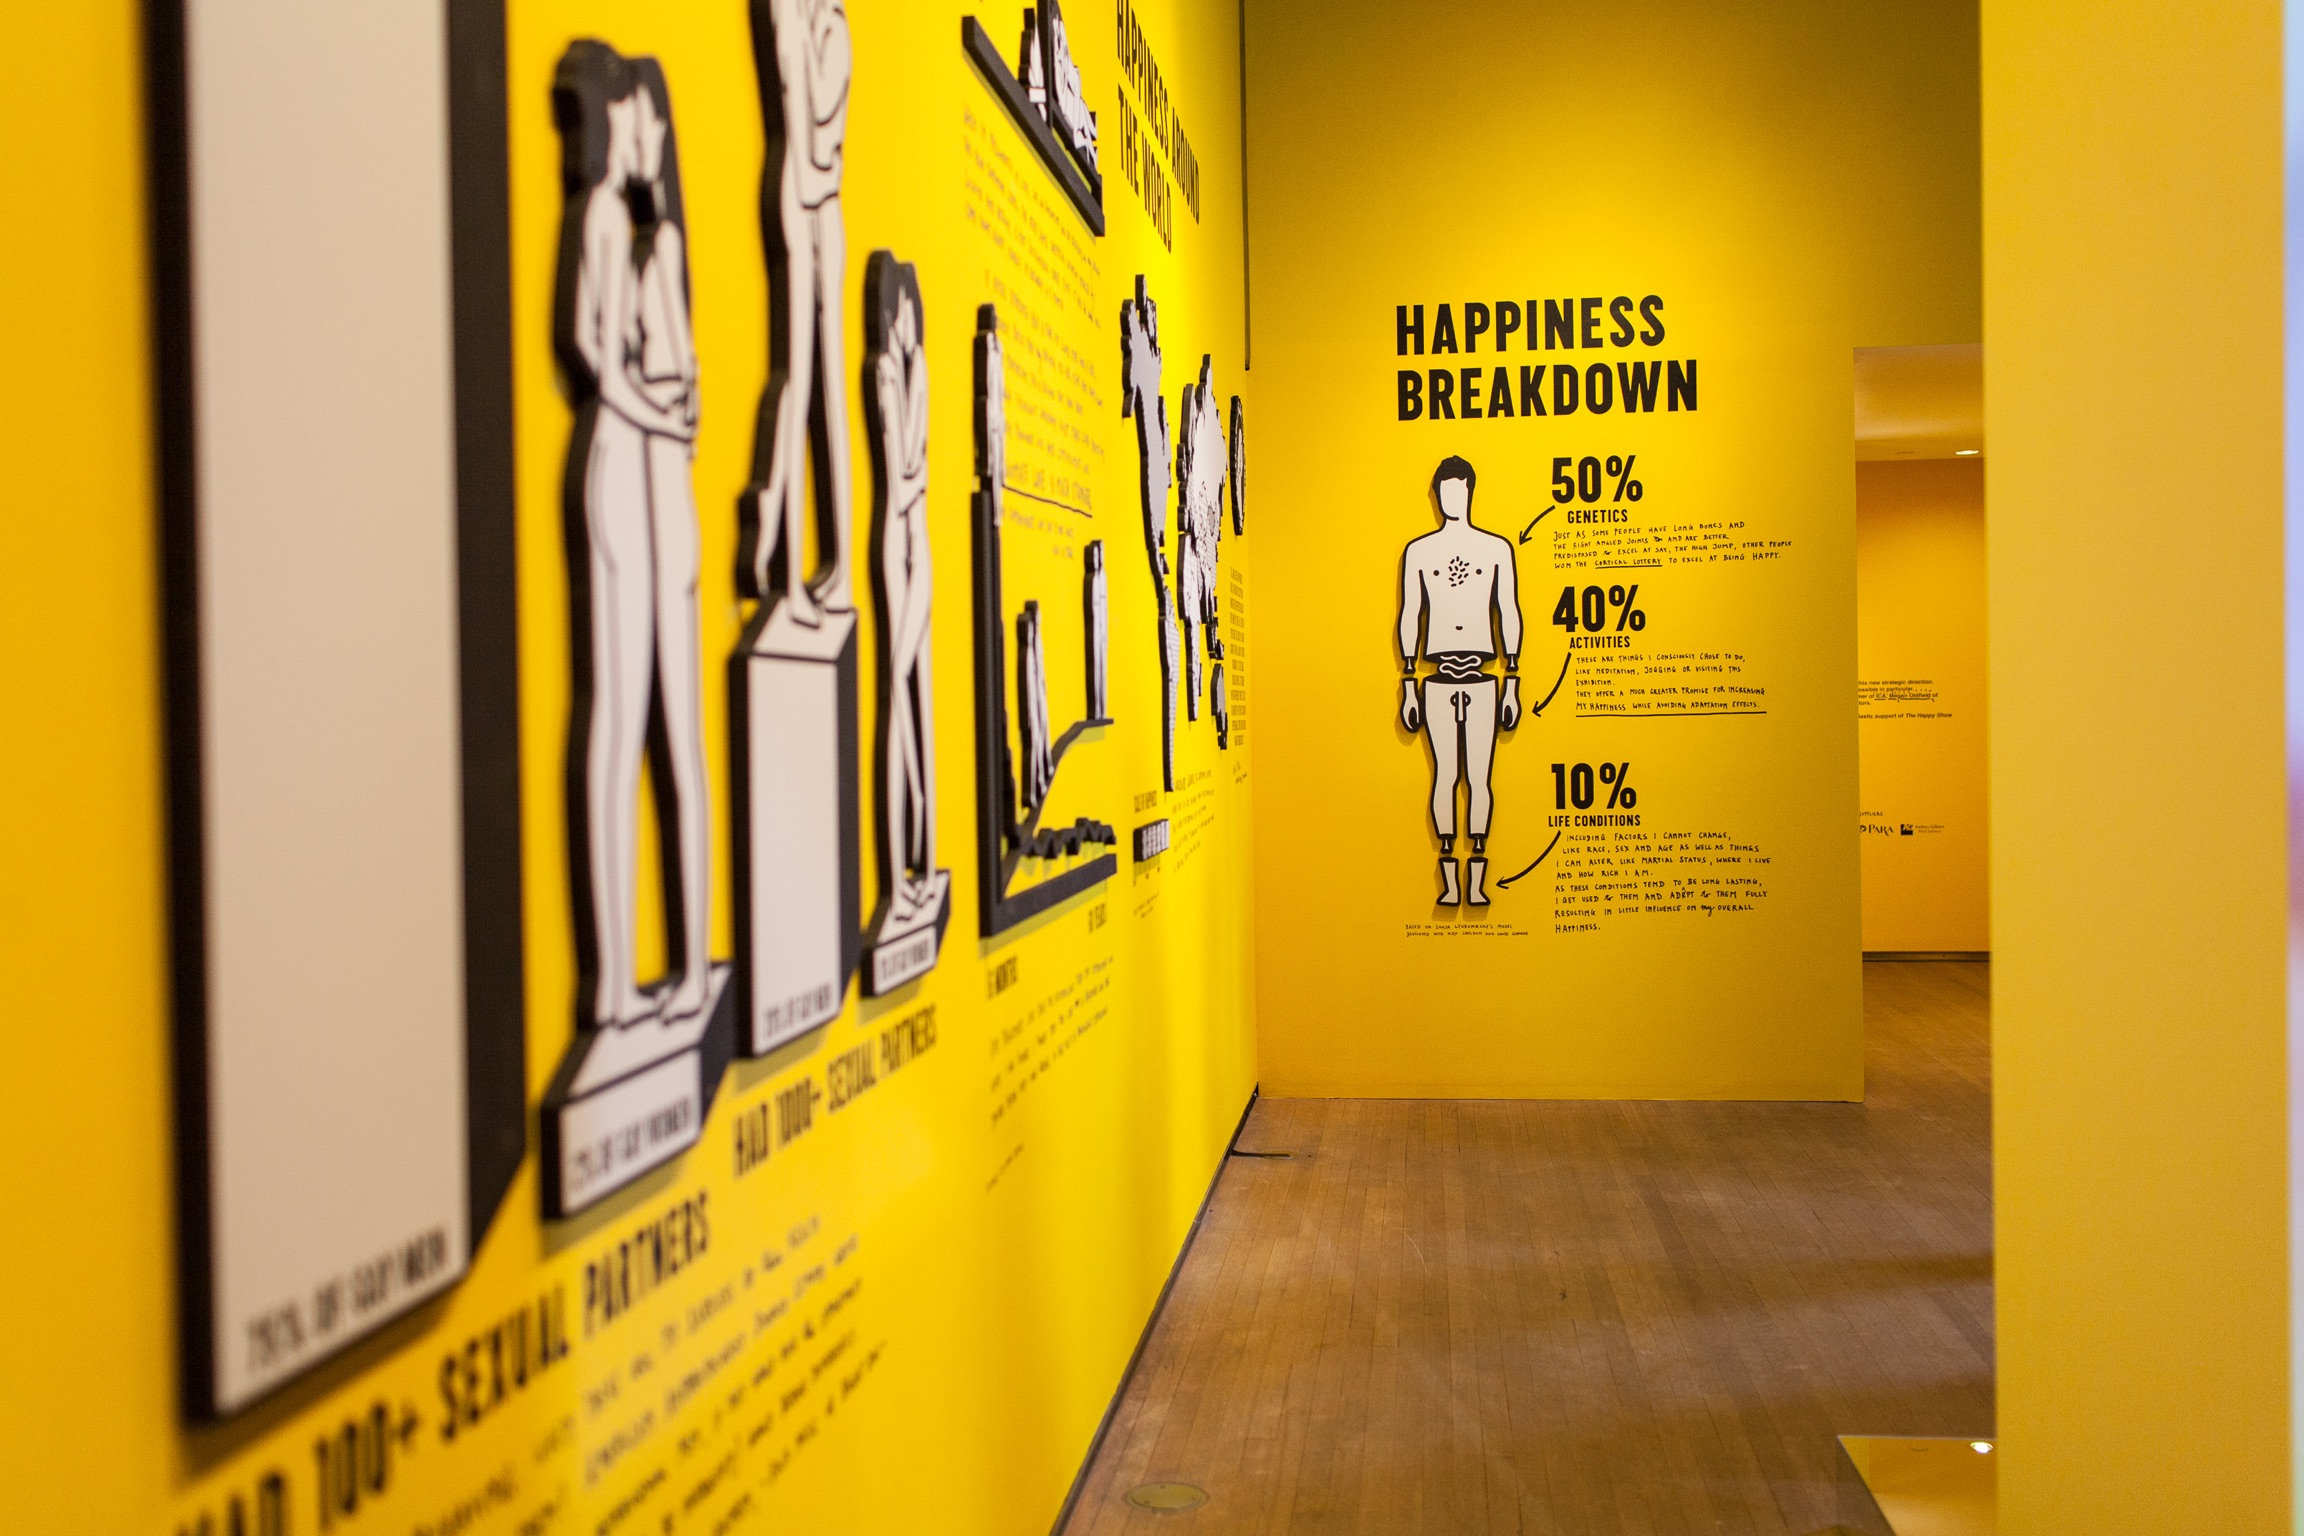 Museum of Vancouver Inspires Happiness Through Art